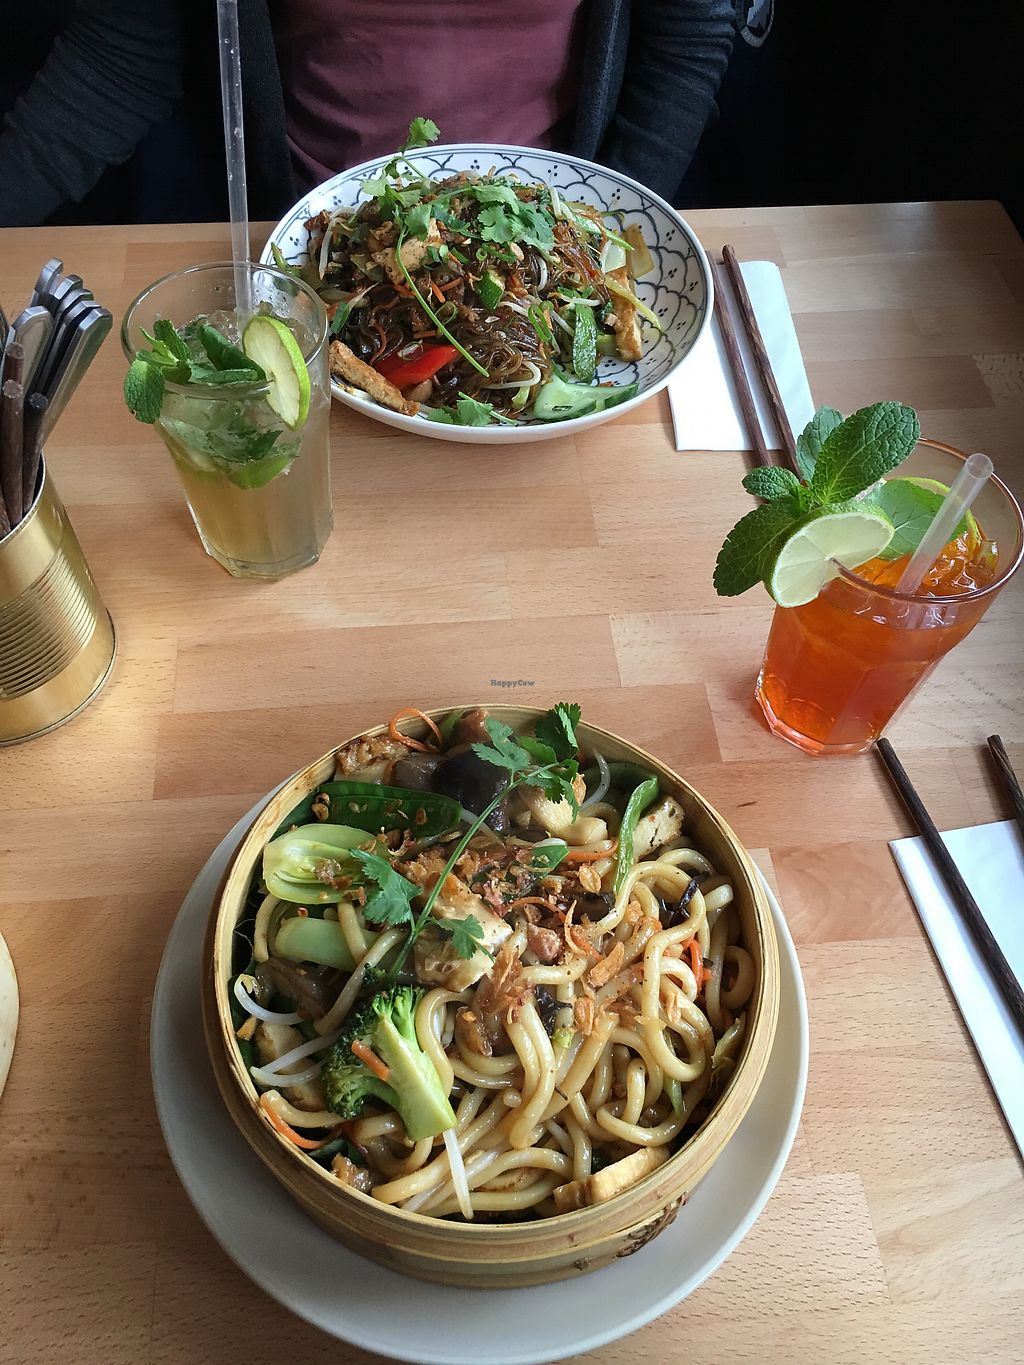 """Photo of +84 Asian Restaurant  by <a href=""""/members/profile/JouniK%C3%A4rpp%C3%A4"""">JouniKärppä</a> <br/>Tofu, seitan with noodles. Golden girl drink <br/> February 25, 2018  - <a href='/contact/abuse/image/96619/363709'>Report</a>"""